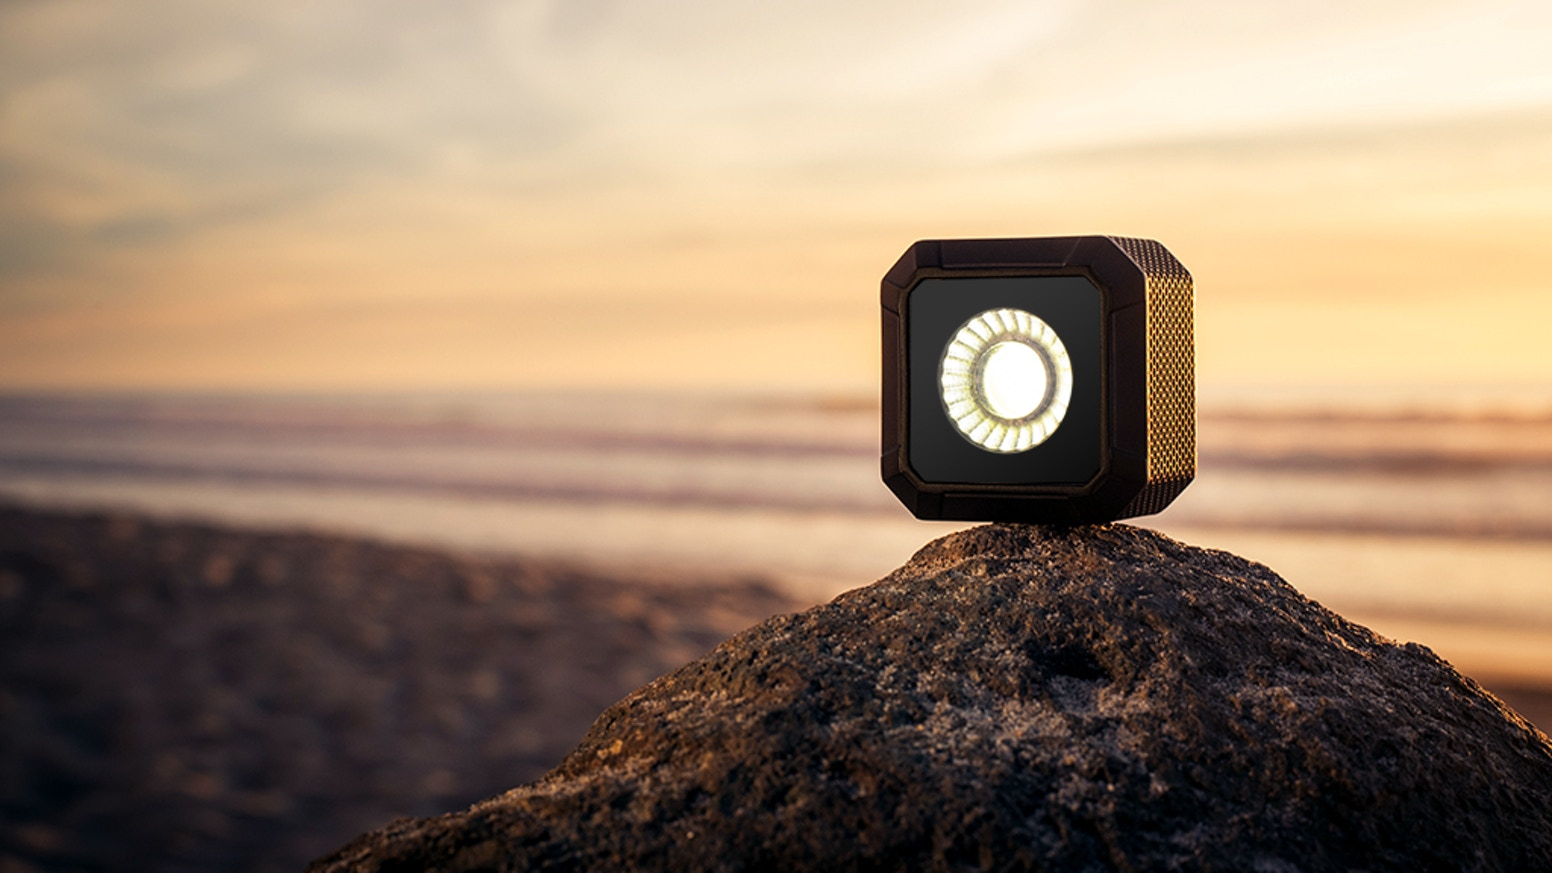 Smart, Bluetooth Controlled, Pocket-Sized Lifestyle Light for iPhone, Android, DSLR, GoPro or the best camera, the one you have on you.